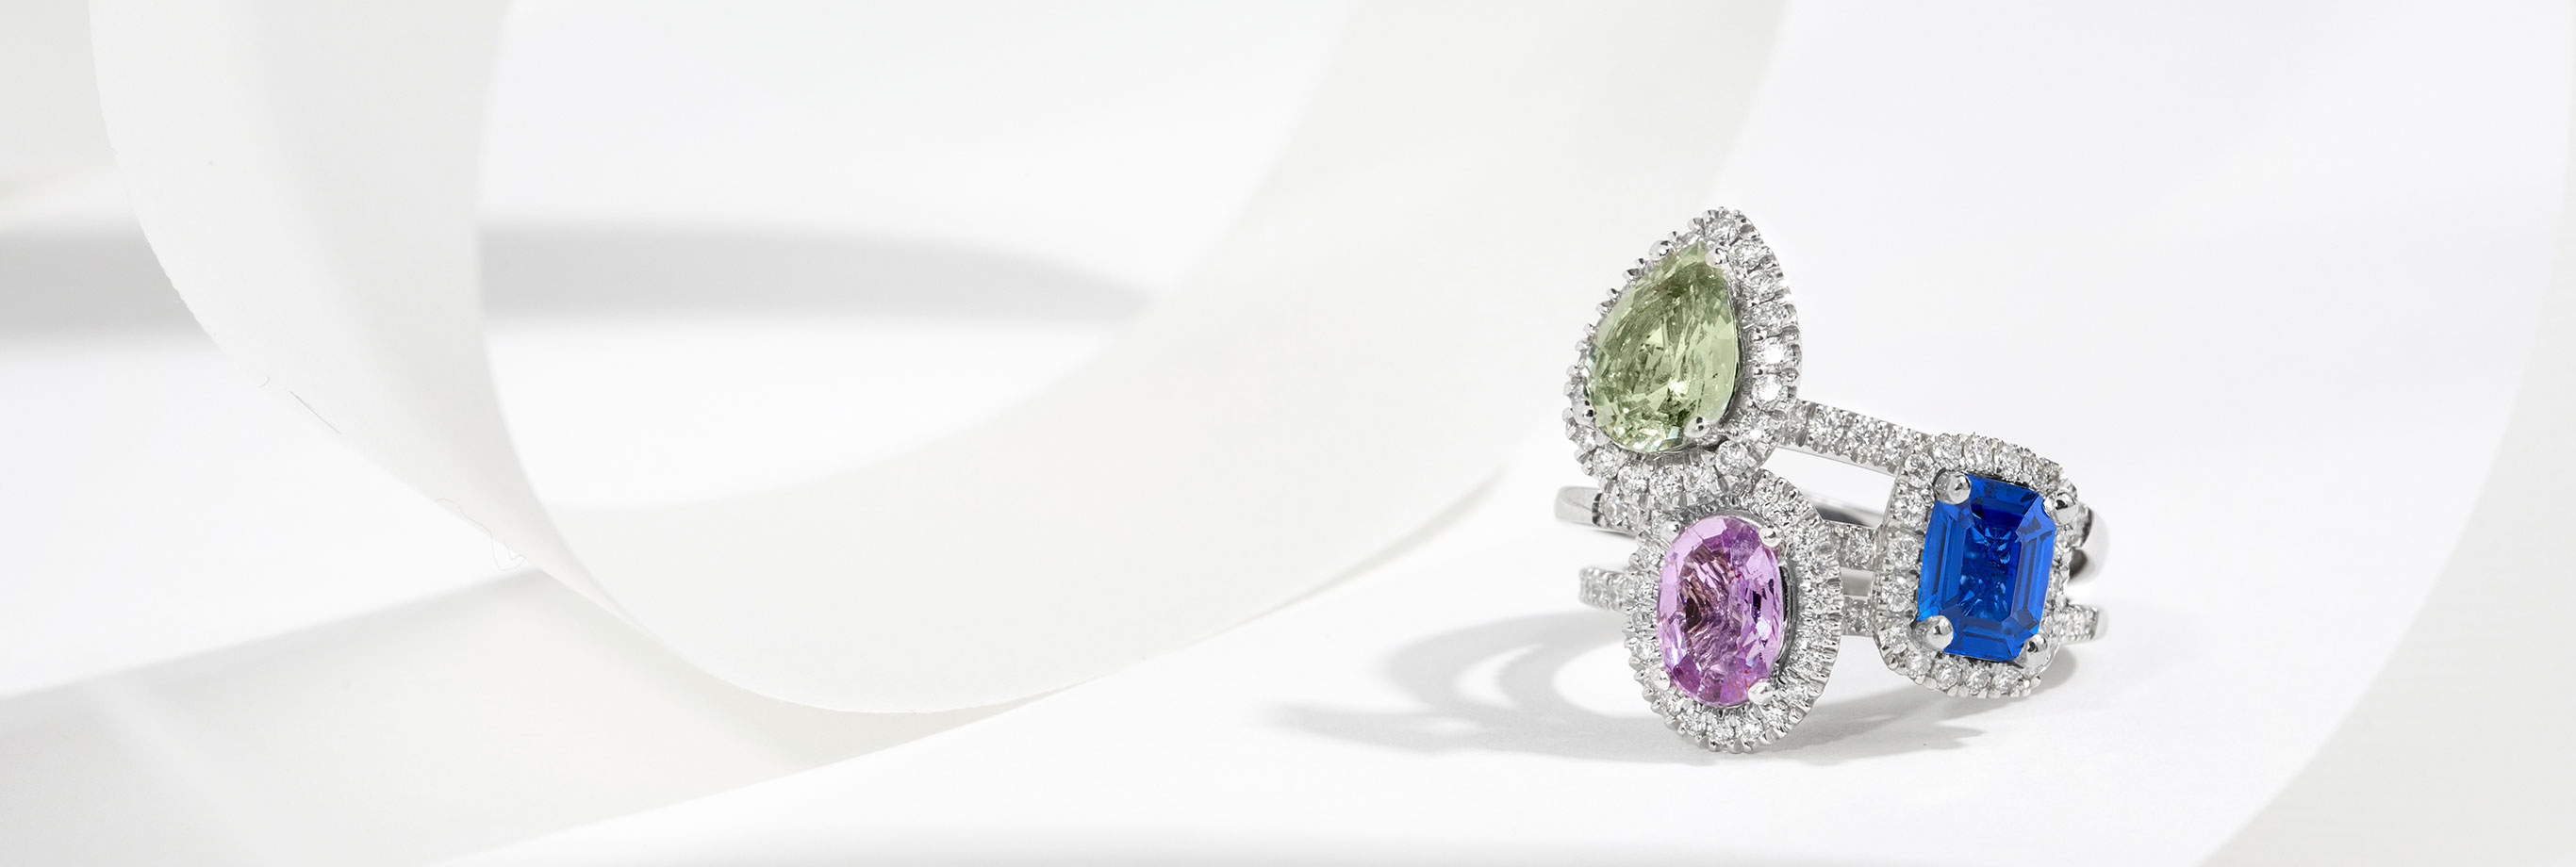 Stack of Three Diamond Halo Gemstone Engagement Rings In White Gold Featuring Pear Cut Green Sapphire, Emerald Cut Blue Sapphire, and Oval Cut Violet Sapphire